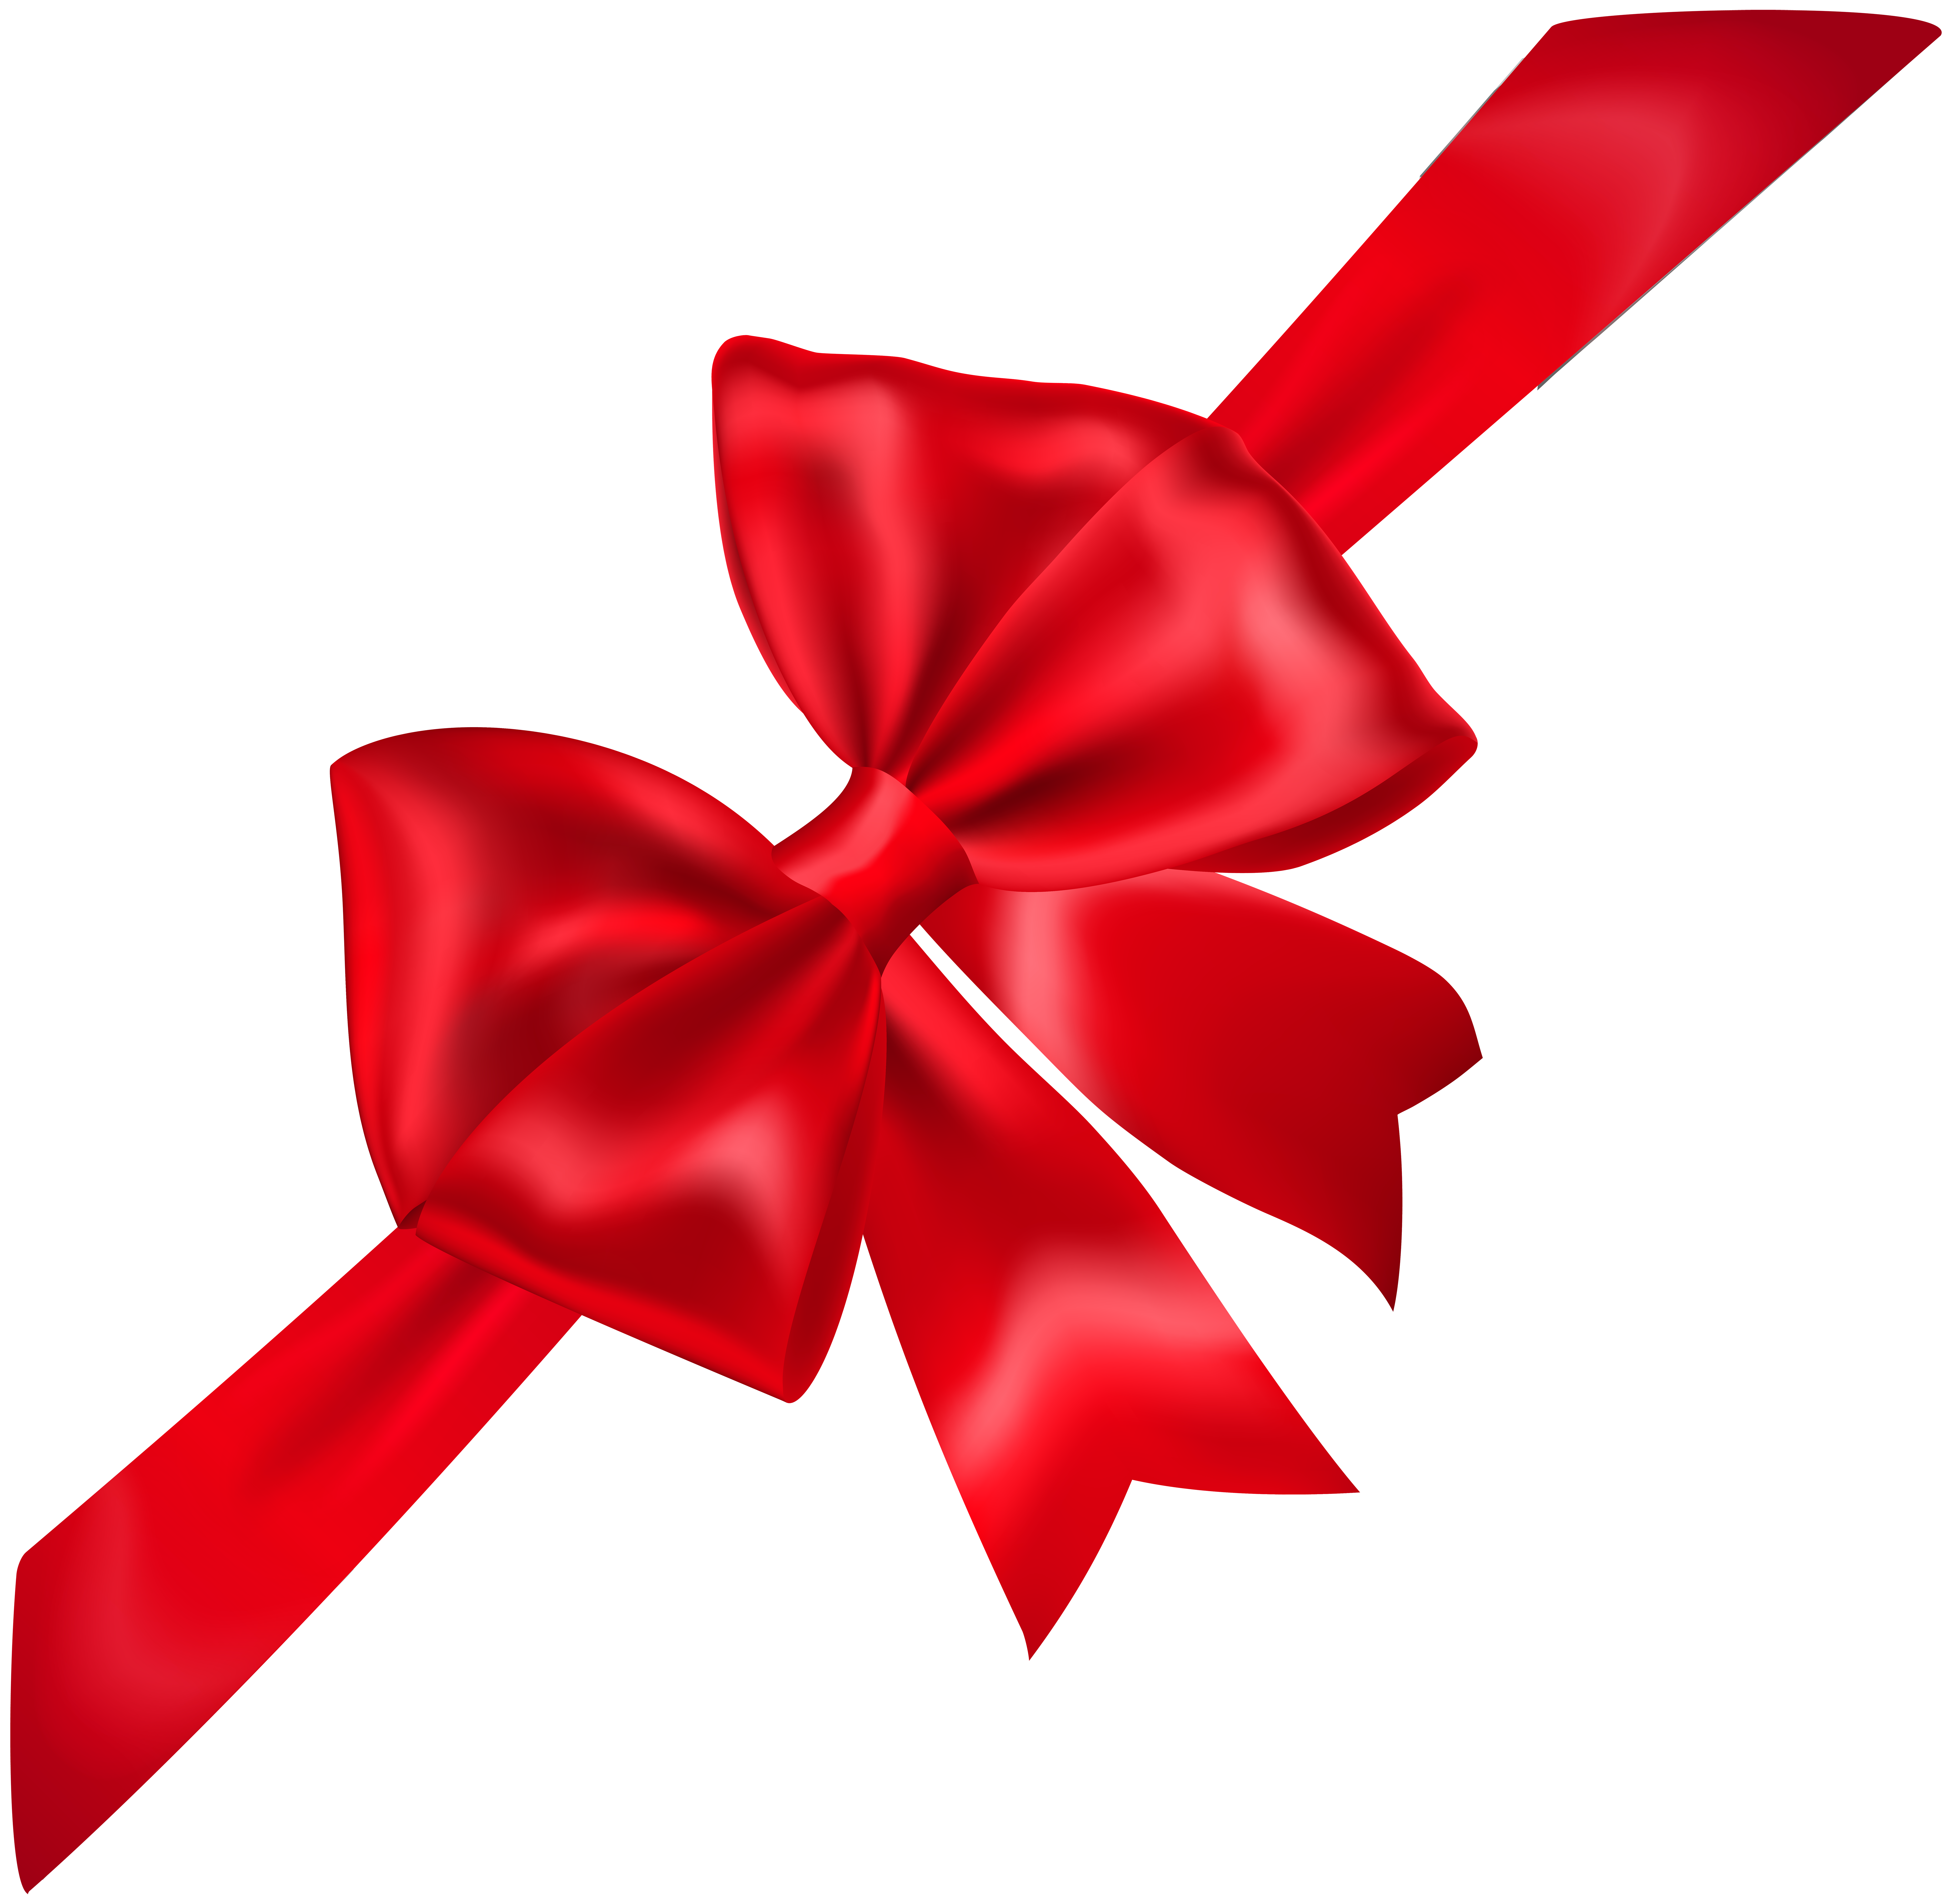 Celebration ribbon png. Red bow transparent image